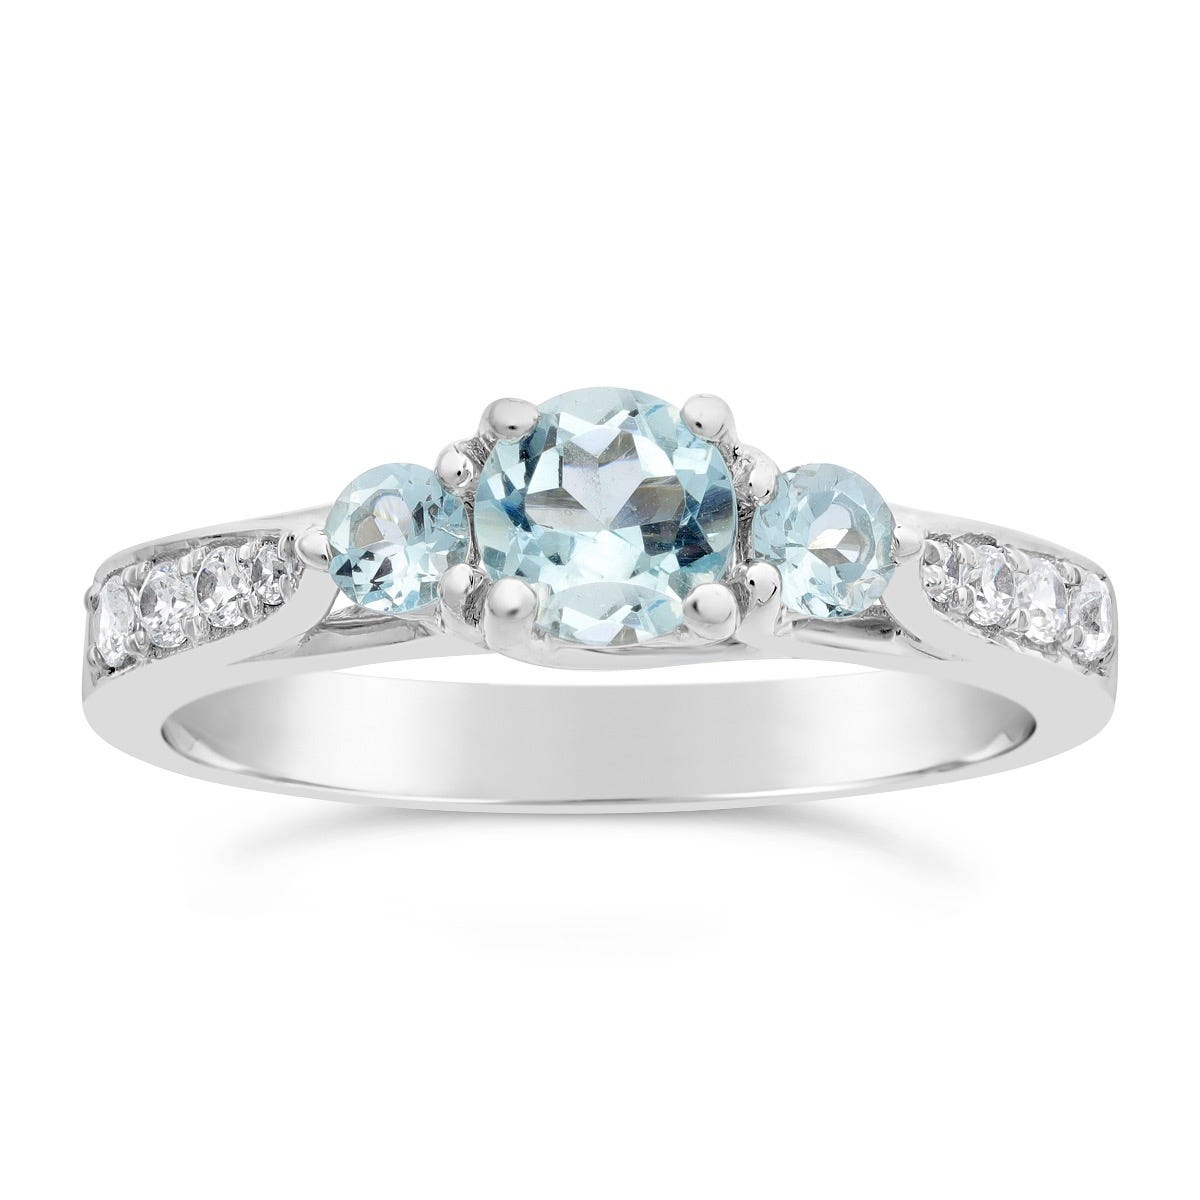 Aquamarine Three Stone Ring in 10k White Gold